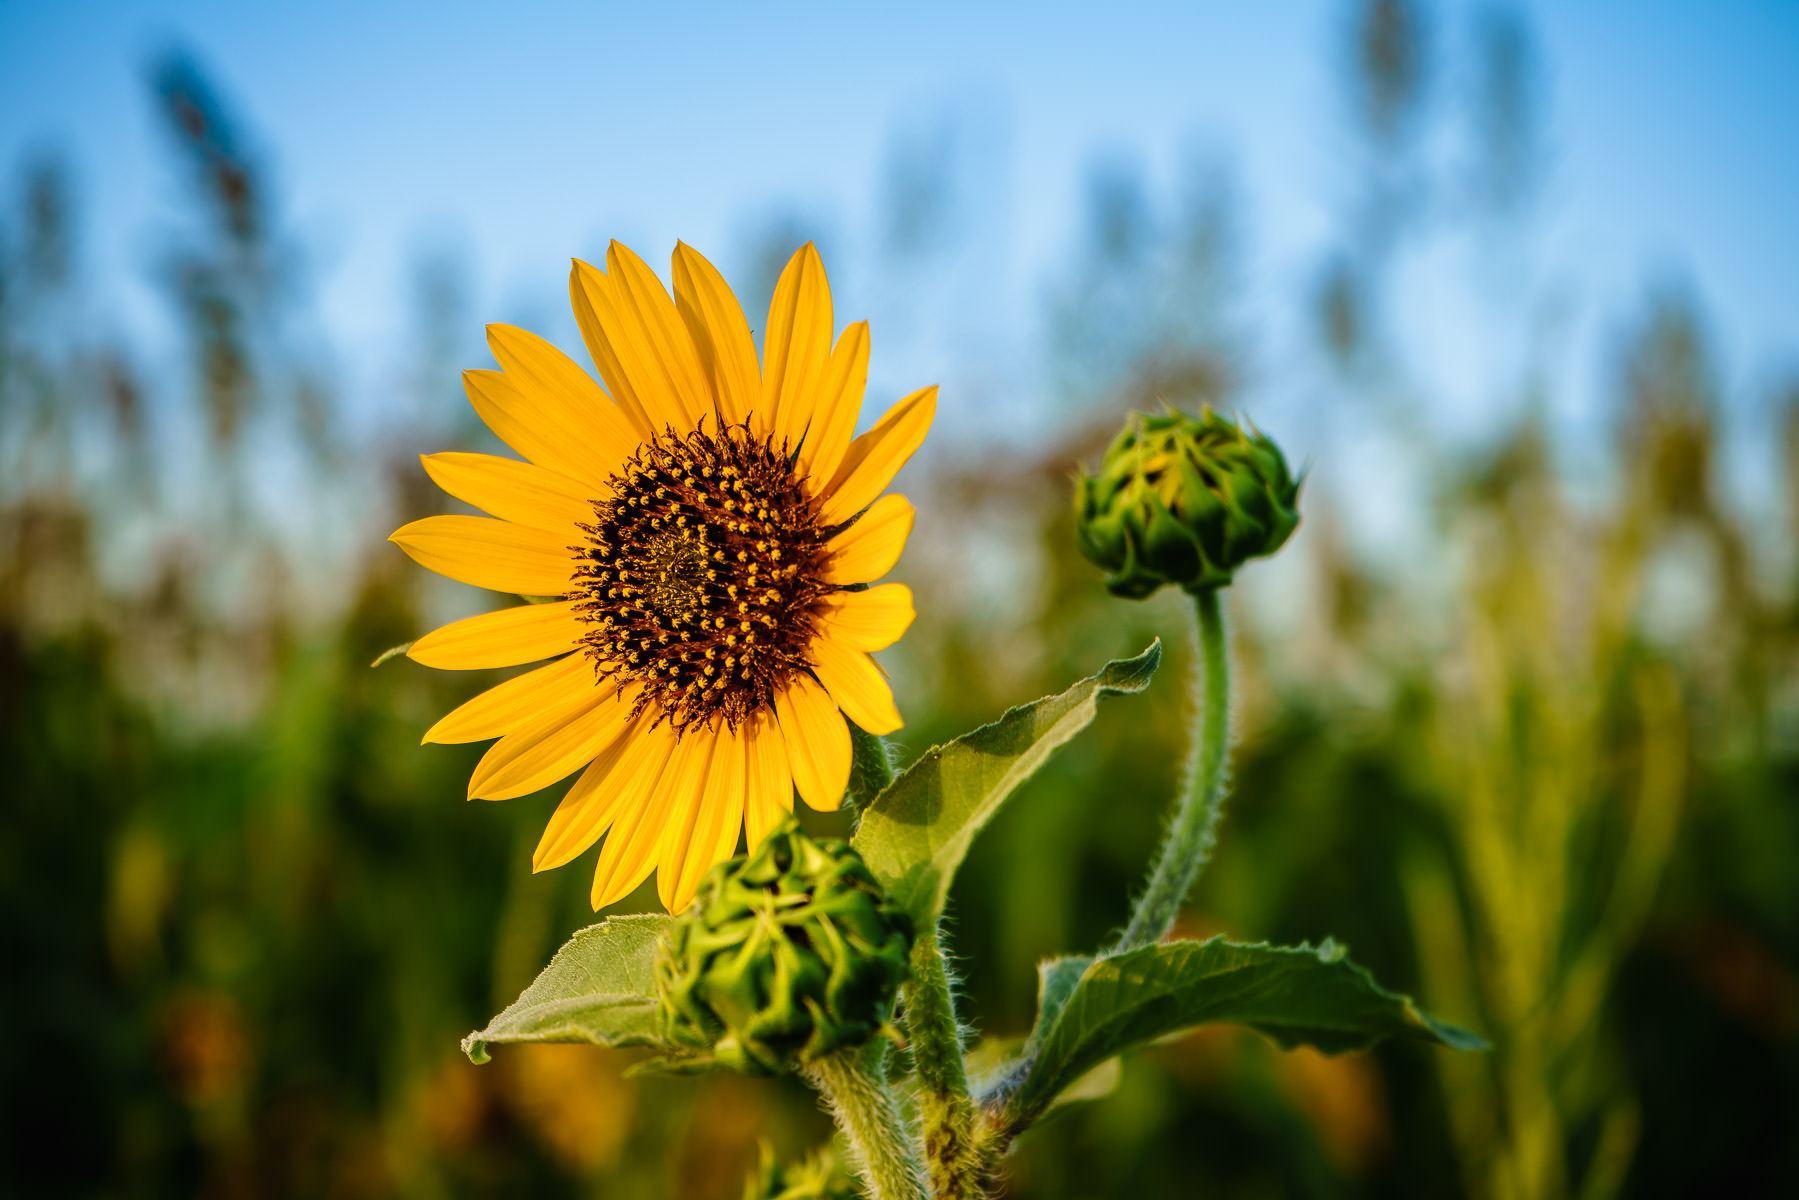 A sunflower greets the morning sun in a field near Dallas, Texas.